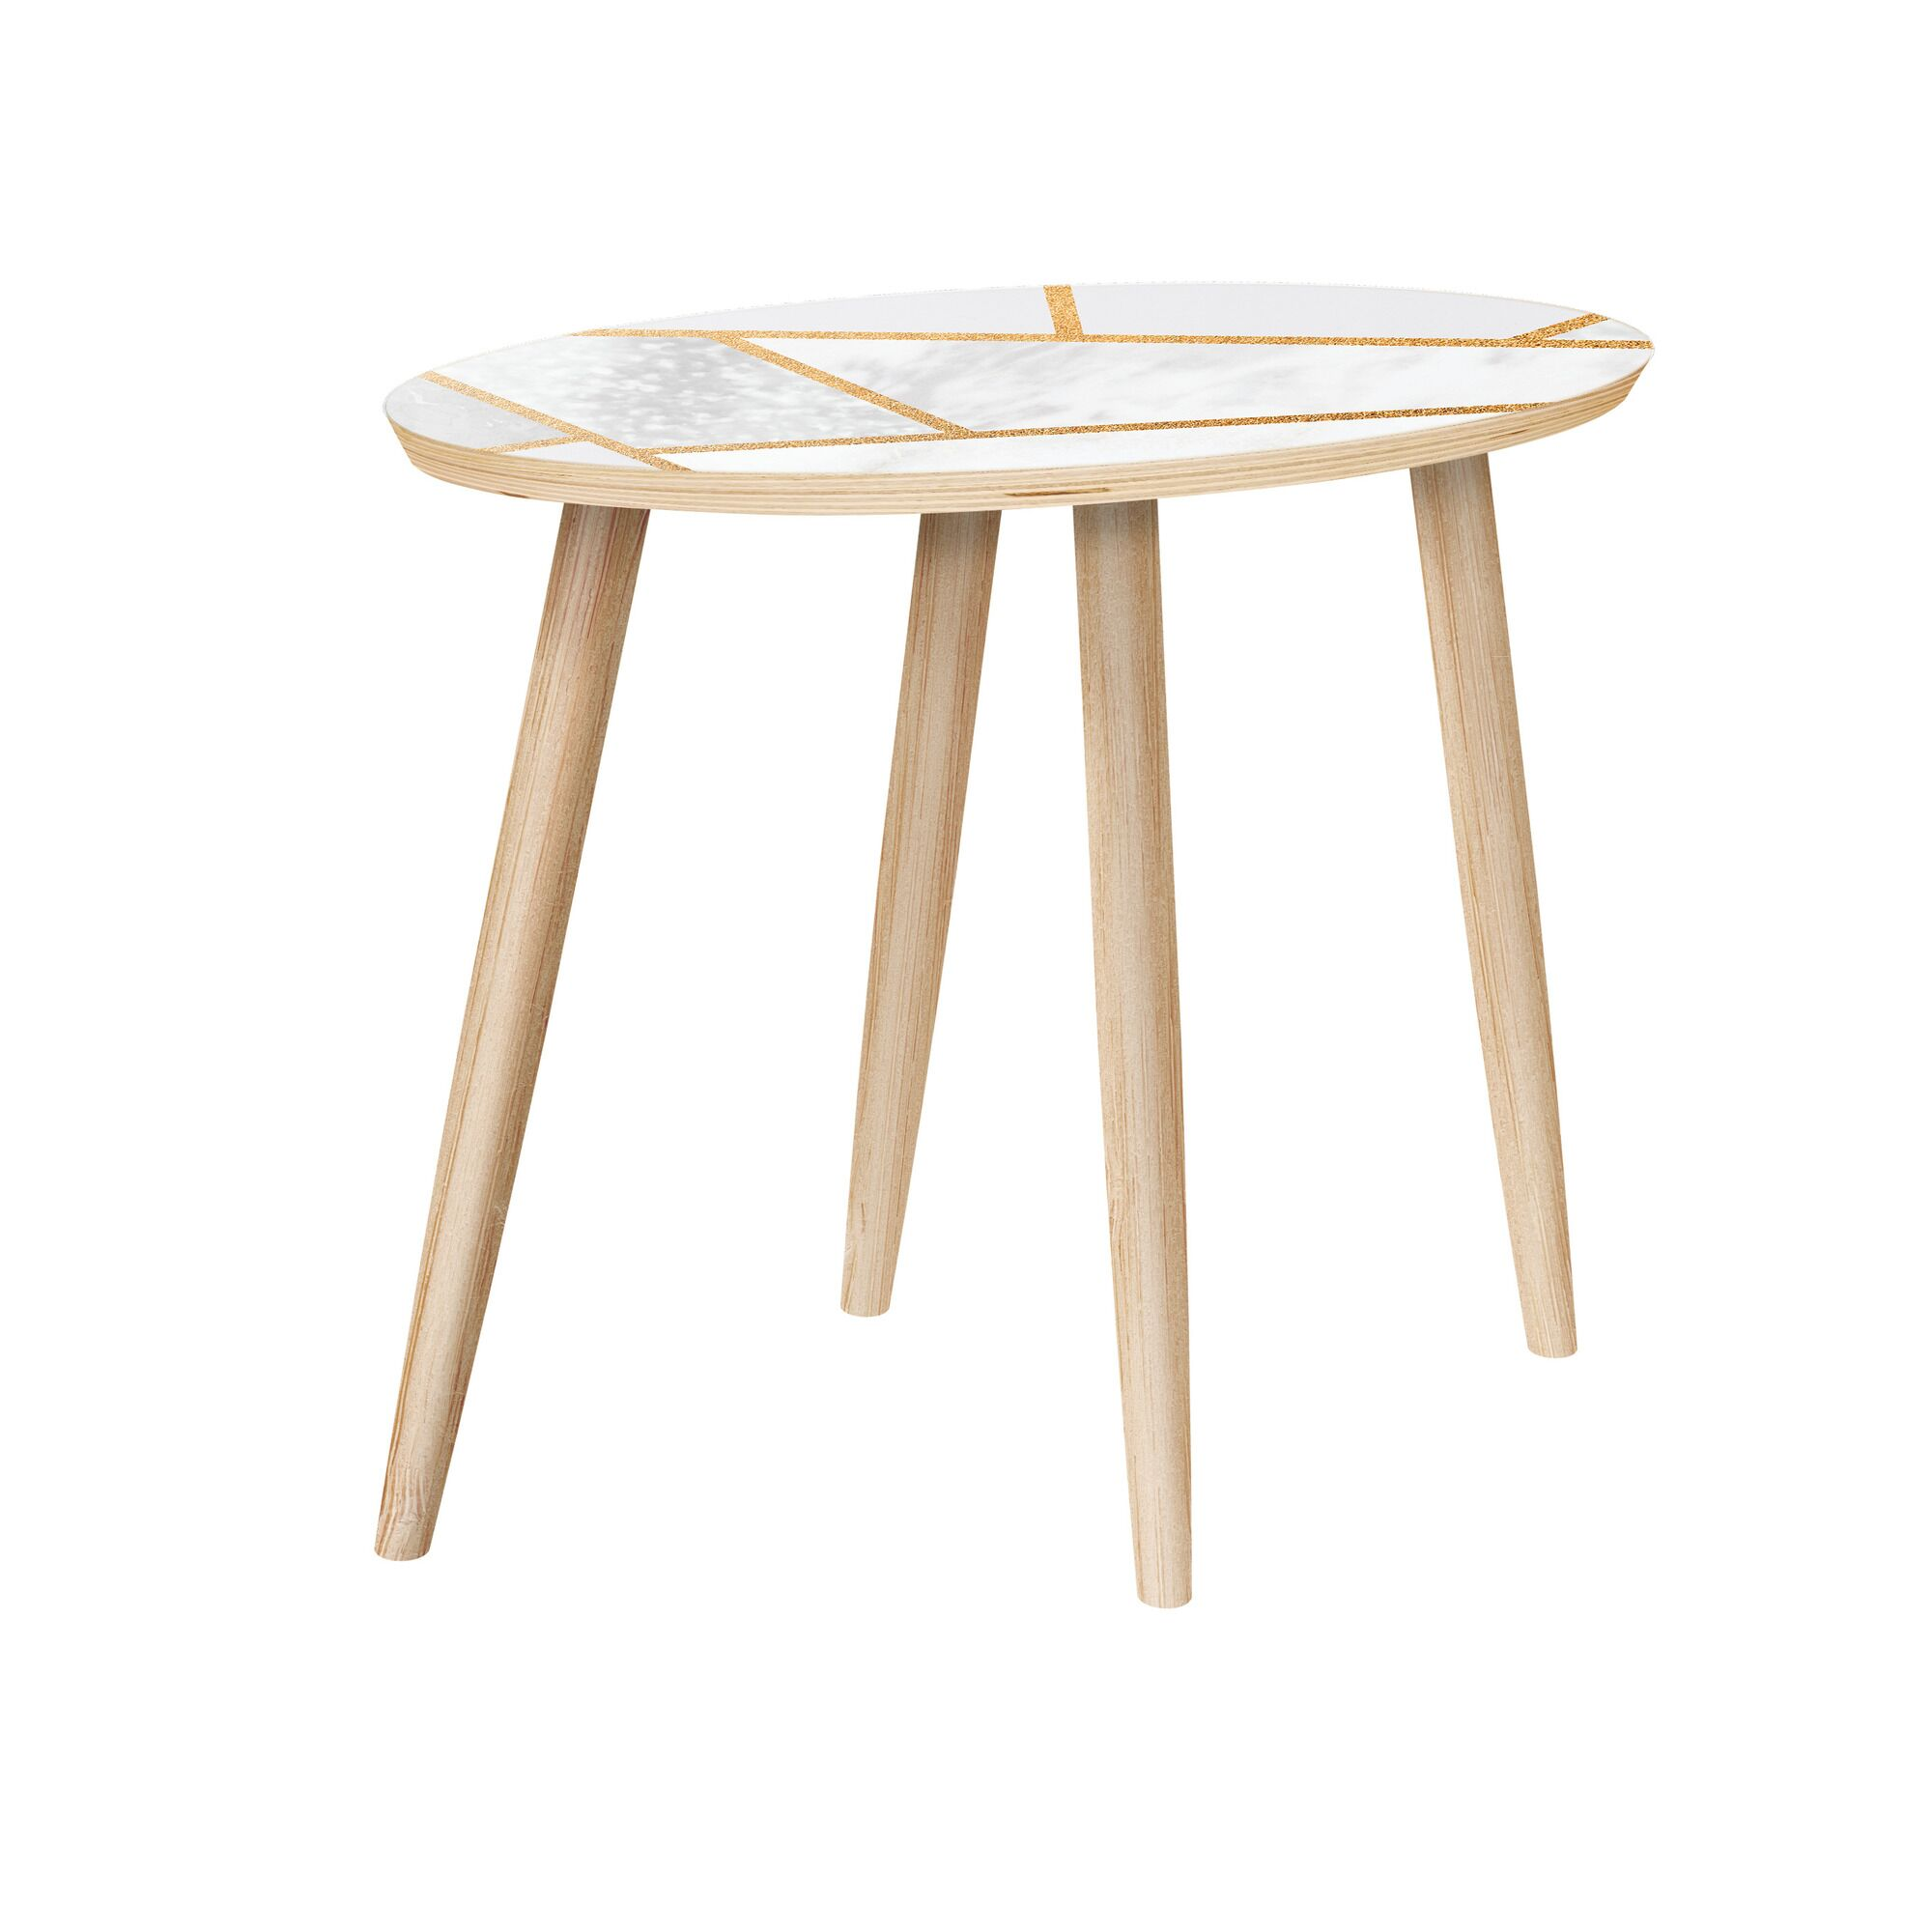 Mcwhorter End Table Table Base Color: Natural, Table Top Color: Natural/White